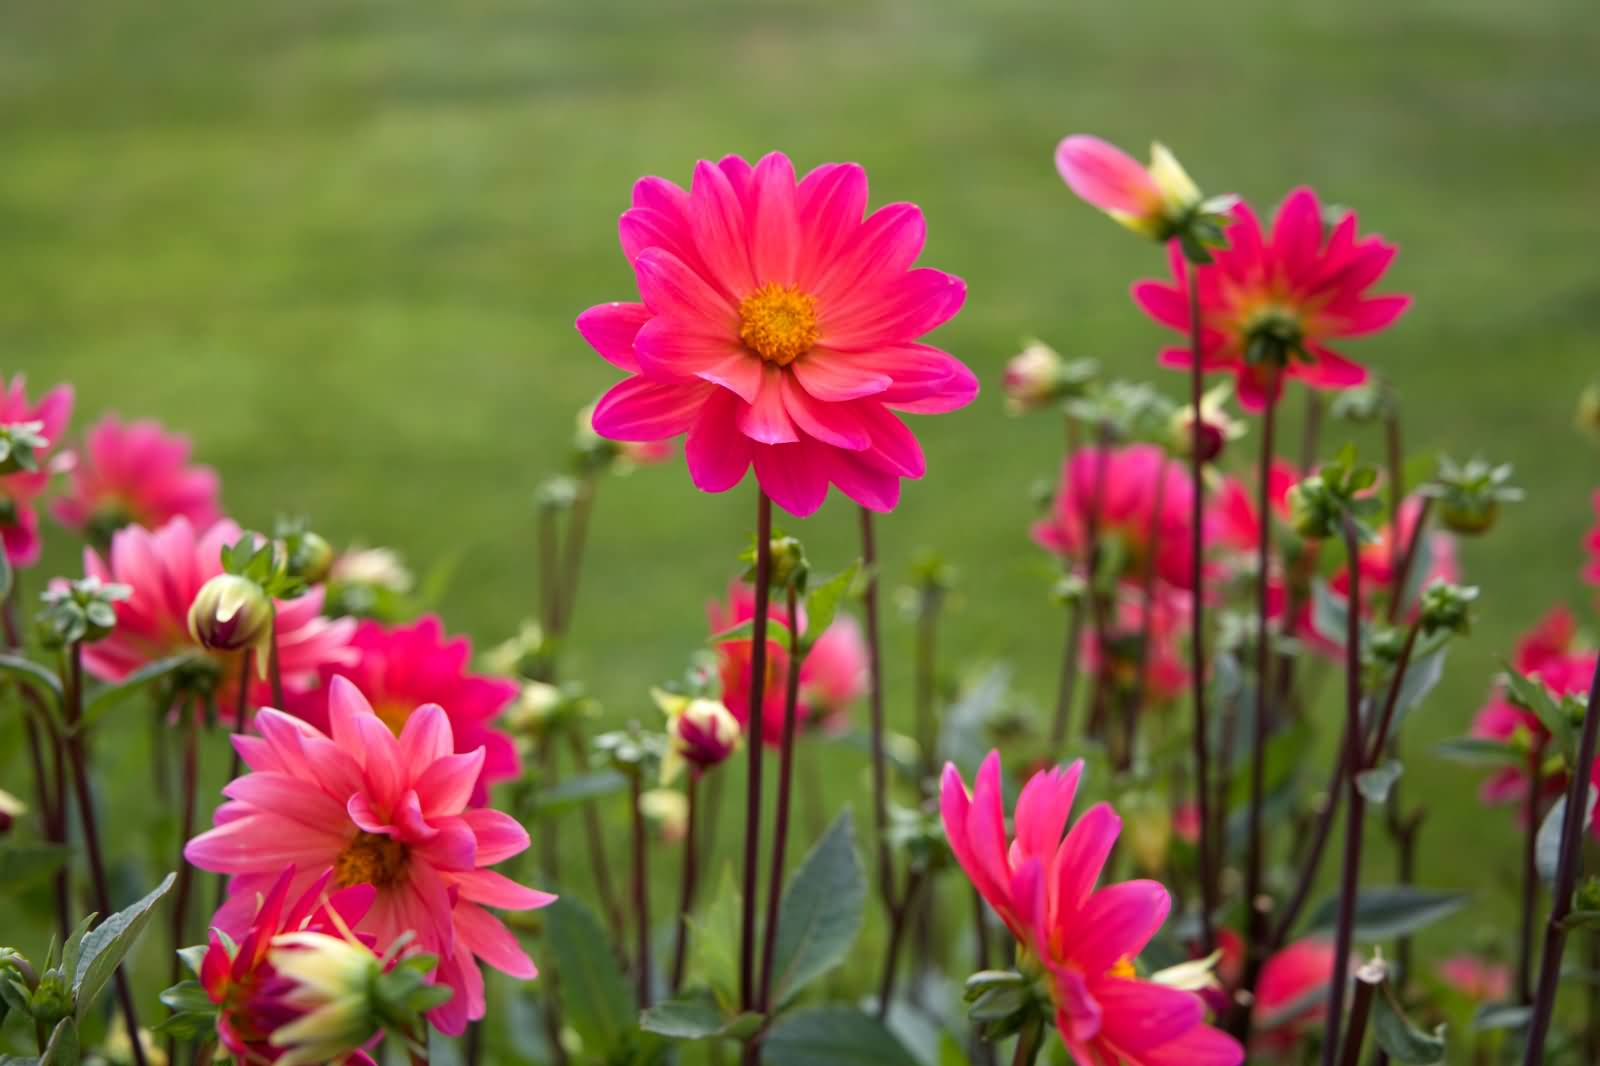 50 most beautiful flower pictures and photos adorable pink flowers field picture izmirmasajfo Image collections